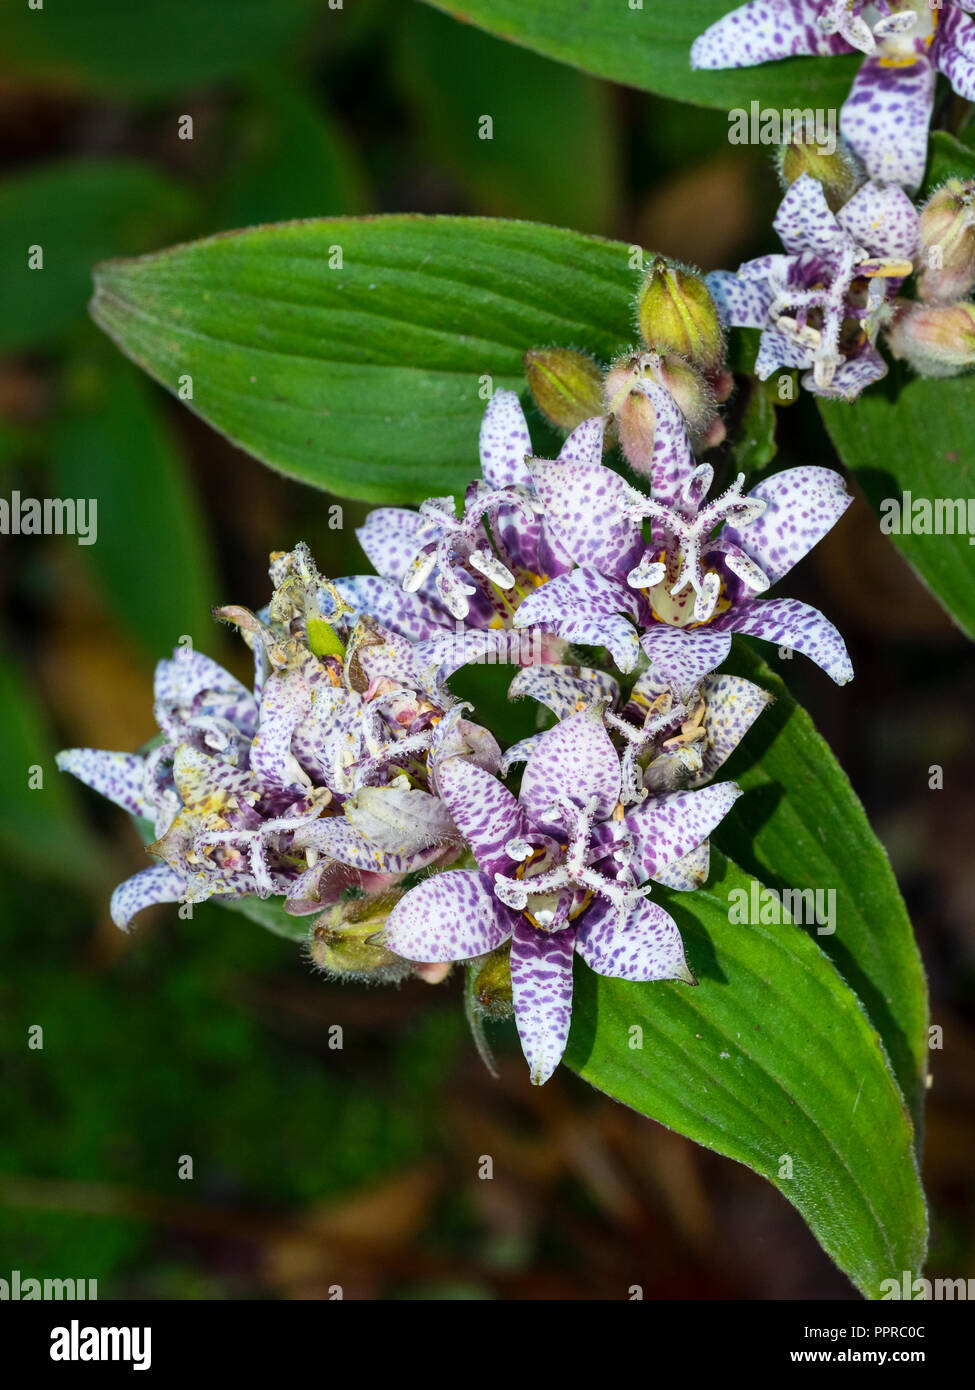 Japanese Toad Lily Stockfotos & Japanese Toad Lily Bilder - Alamy